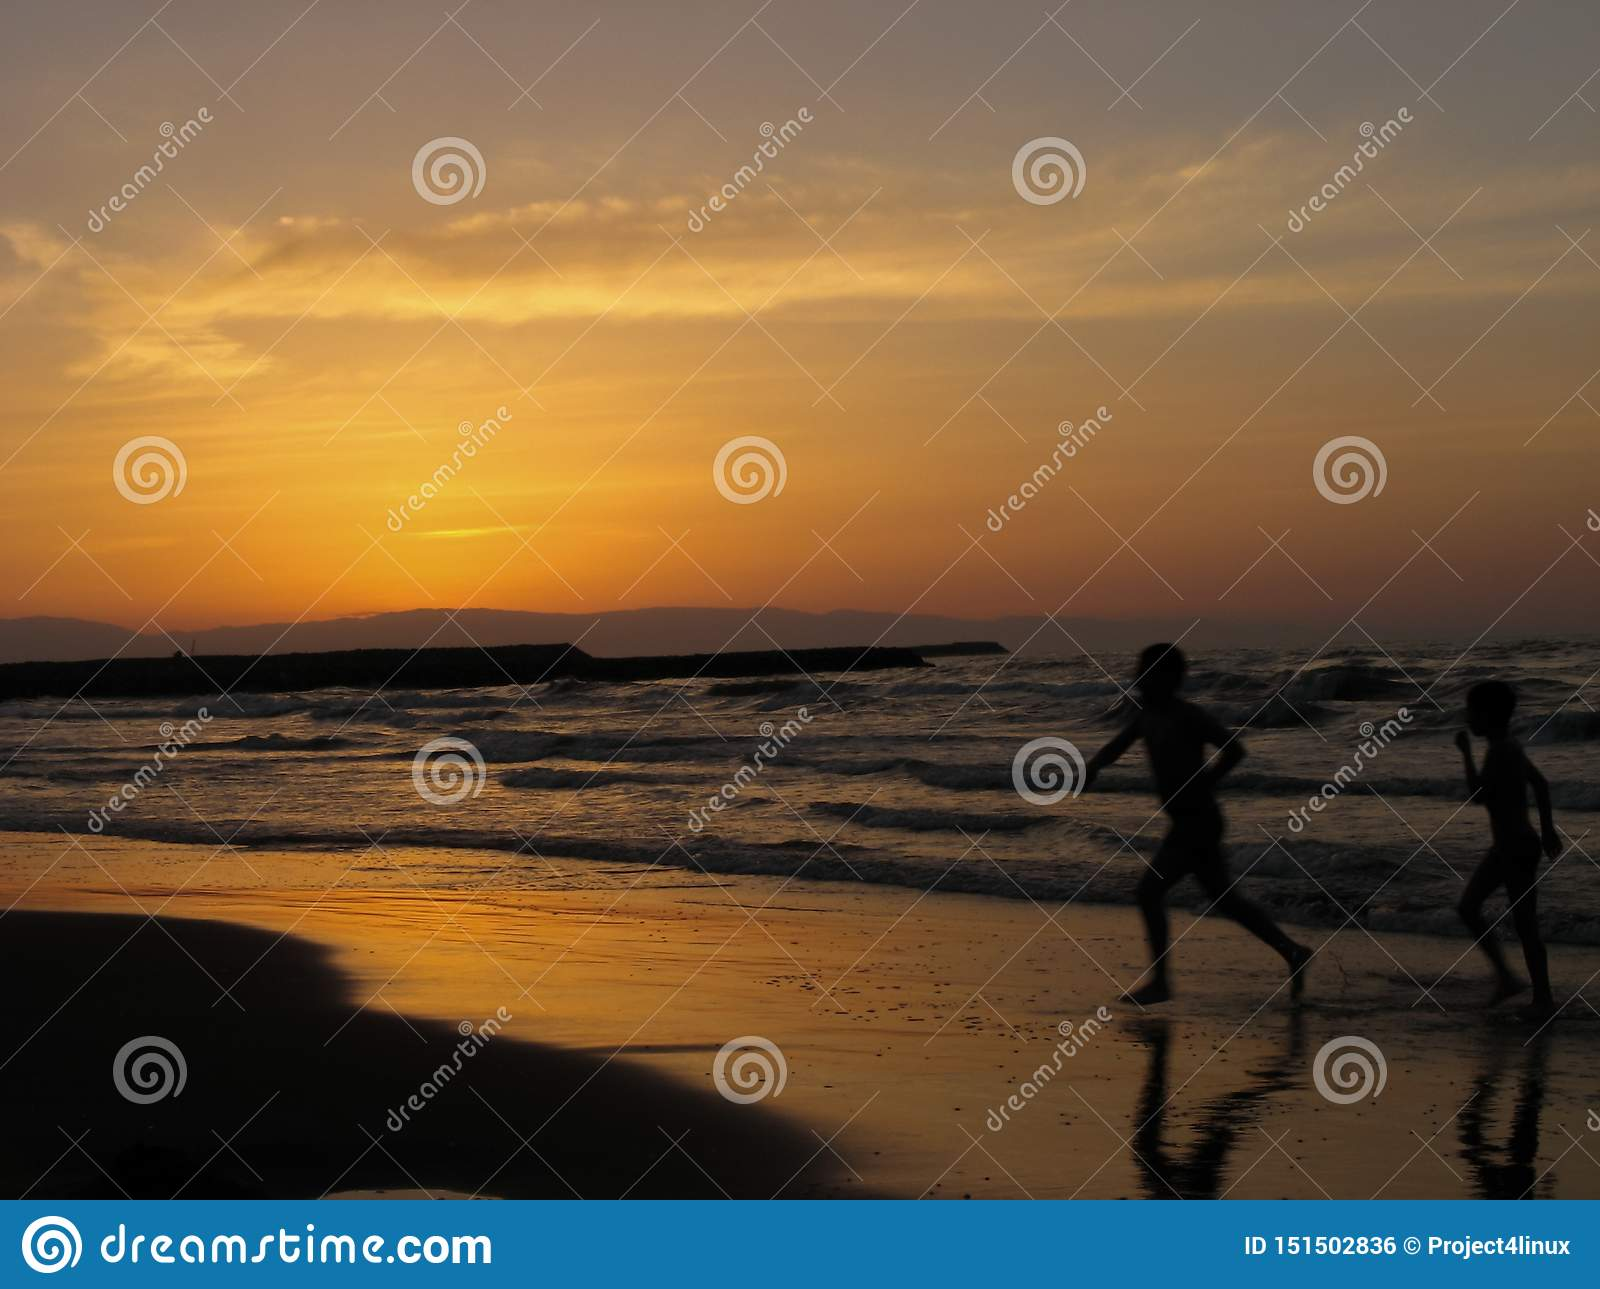 Children playing sea beach sunset. Two boys running on the beach at the sunset time